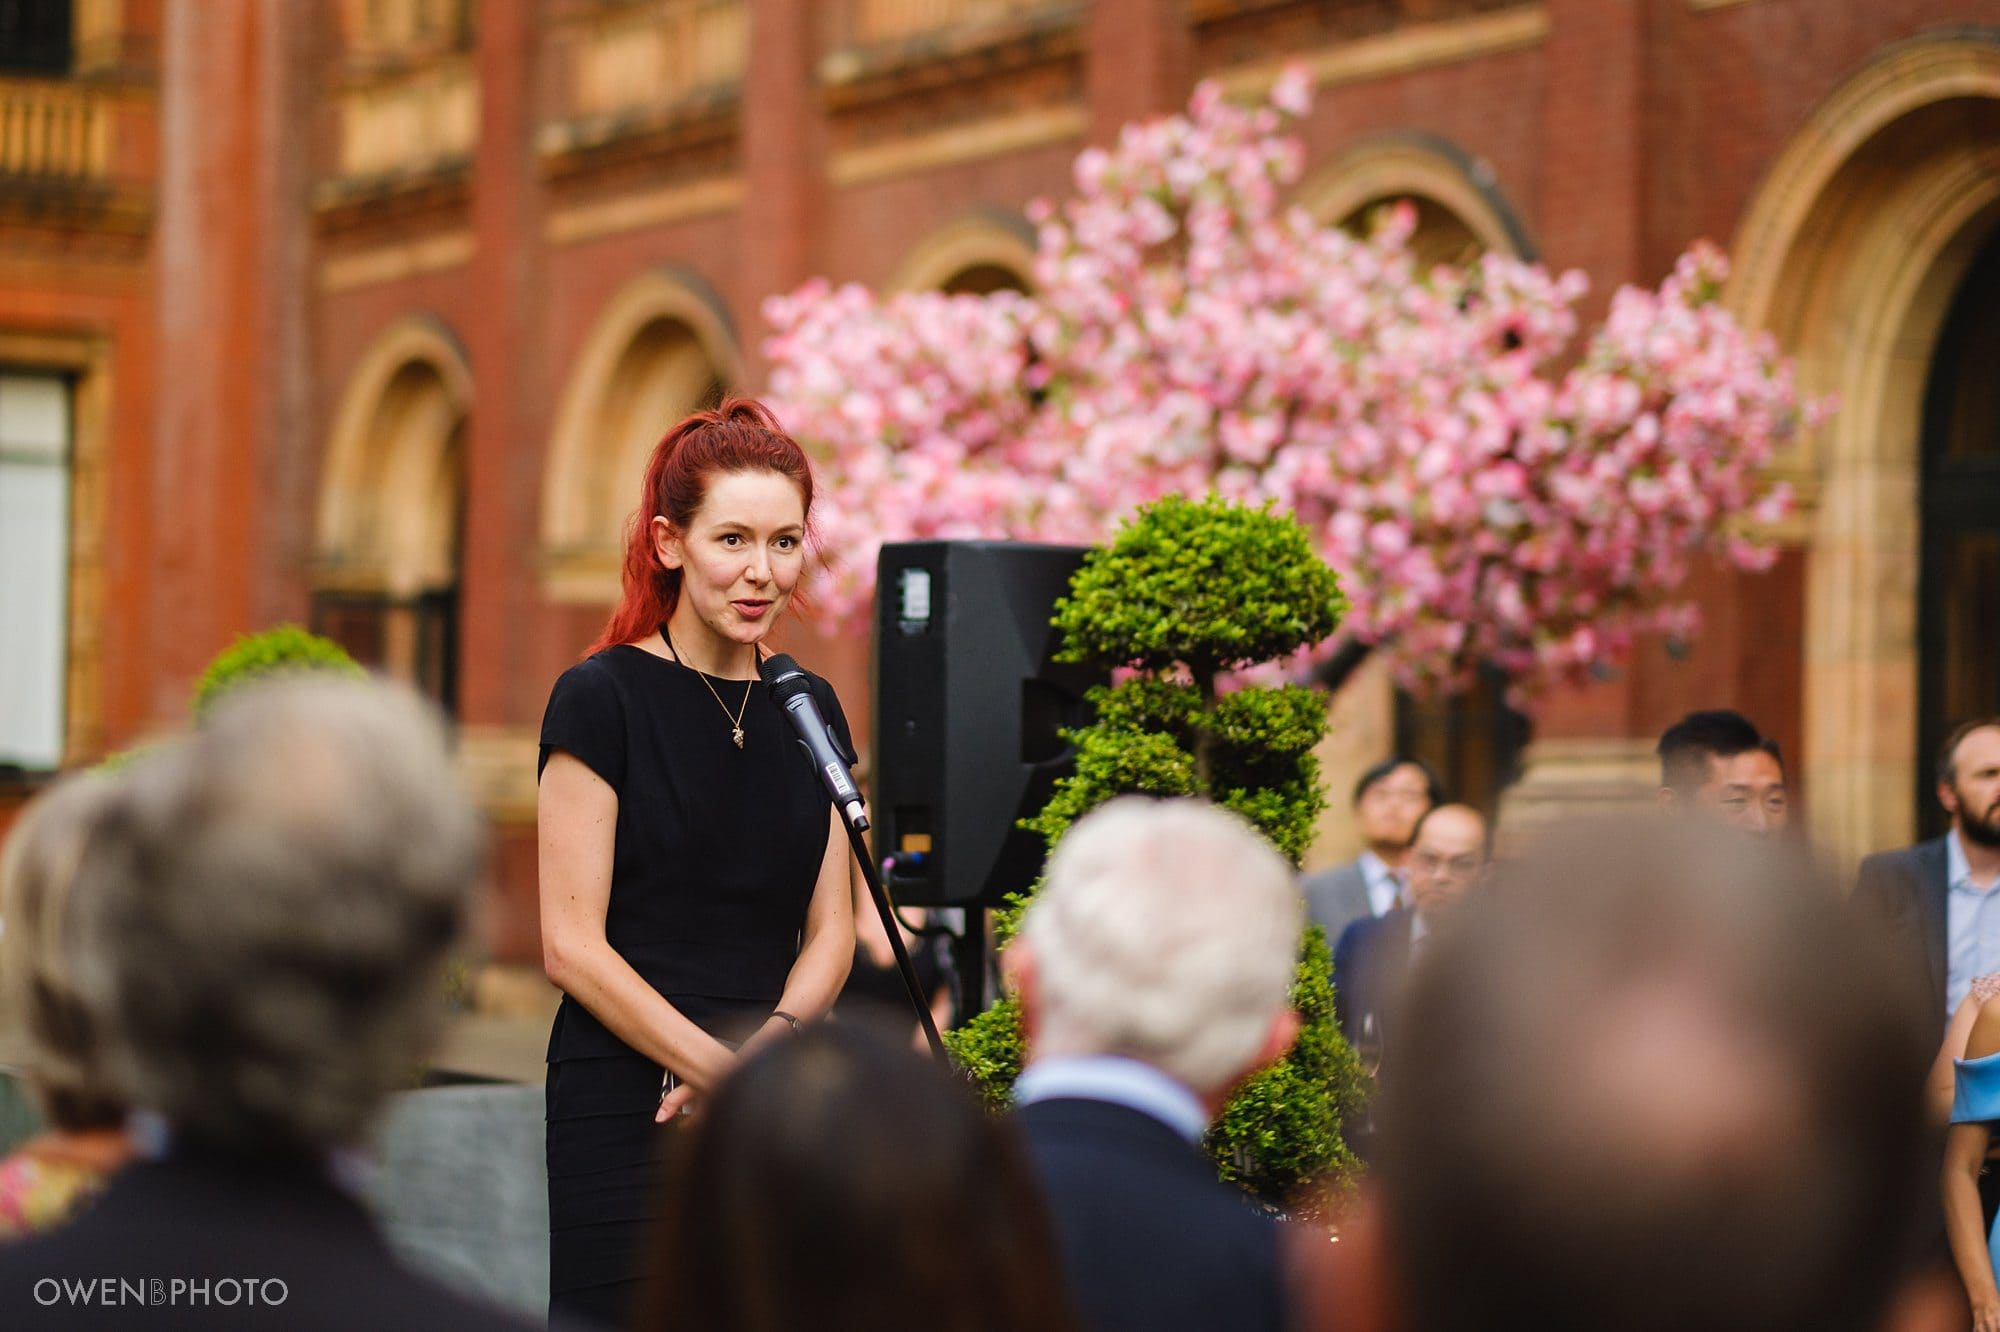 victoria albert event photographer london 035 - Summer party at the V&A Museum